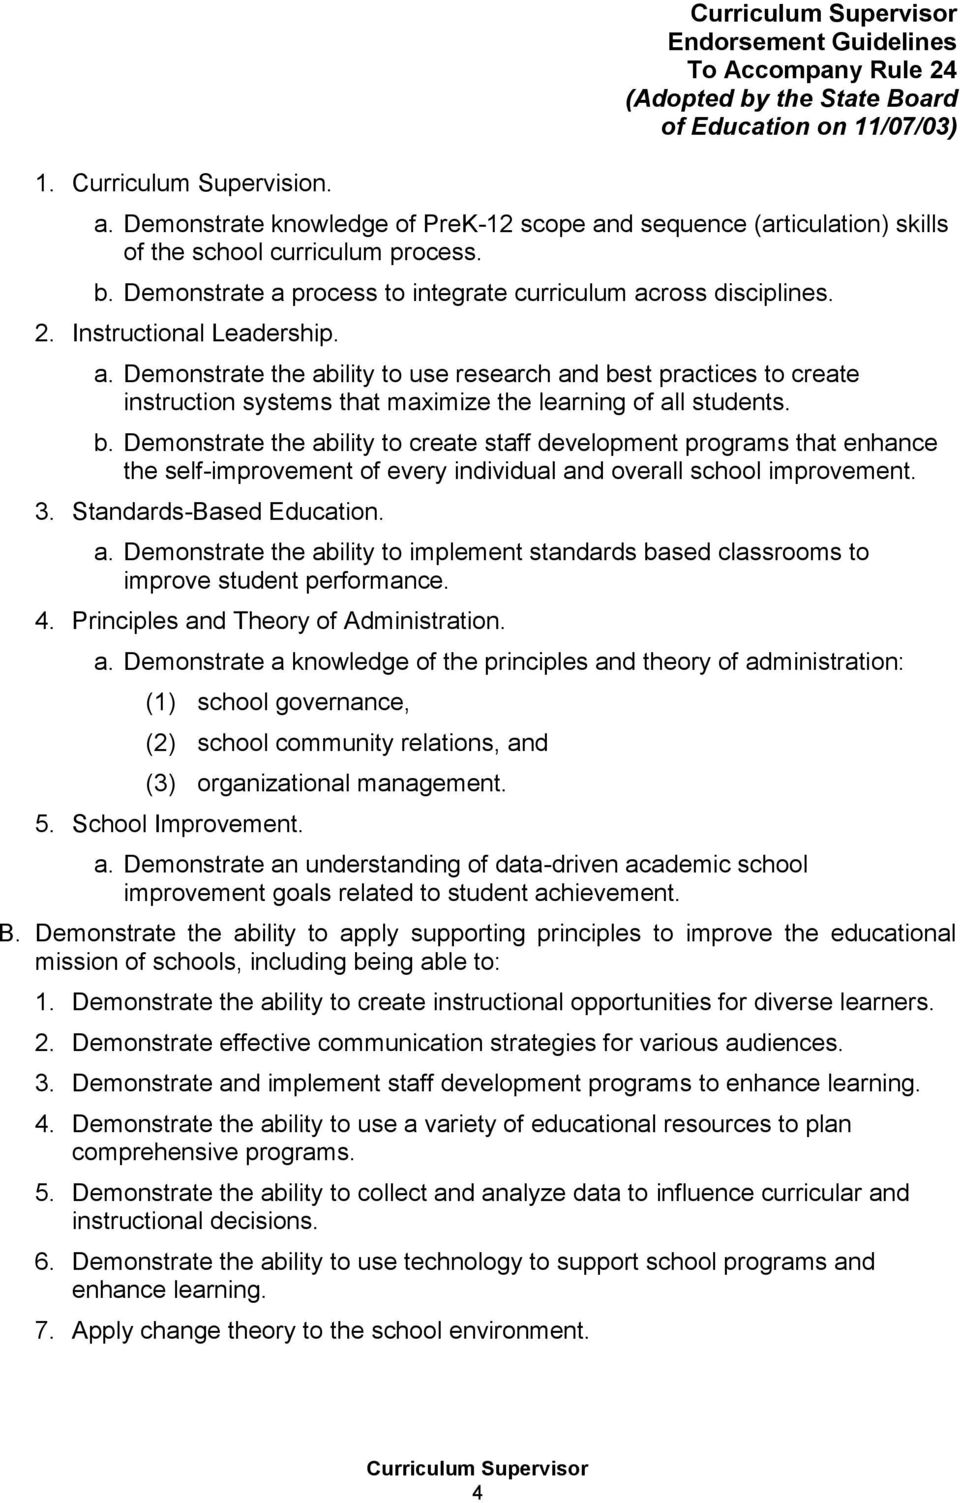 b. Demonstrate the ability to create staff development programs that enhance the self-improvement of every individual and overall school improvement. 3. Standards-Based Education. a. Demonstrate the ability to implement standards based classrooms to improve student performance.